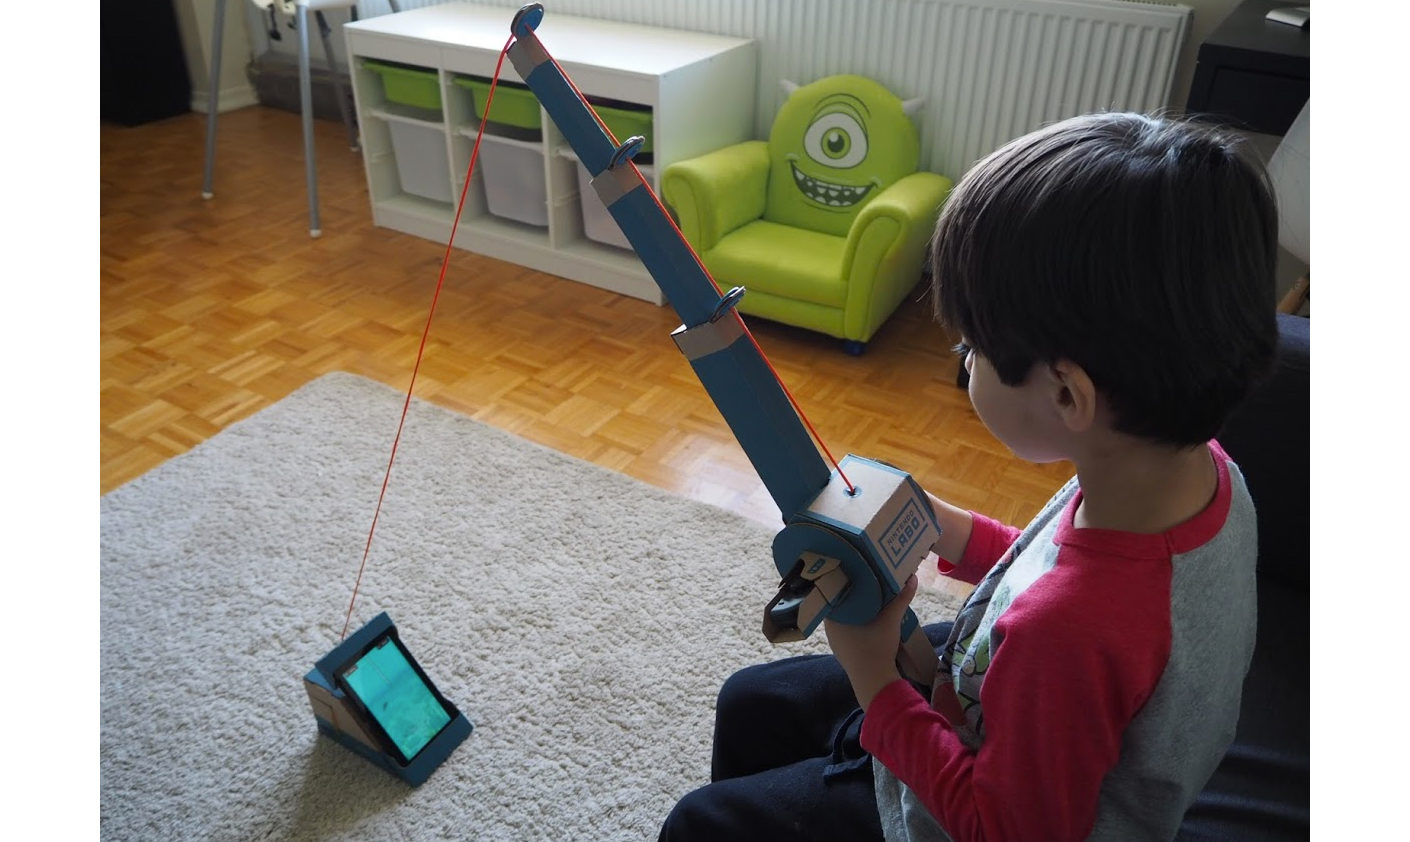 Nintendo Labo Variety Kit Review: An Imaginative Fun Experience For